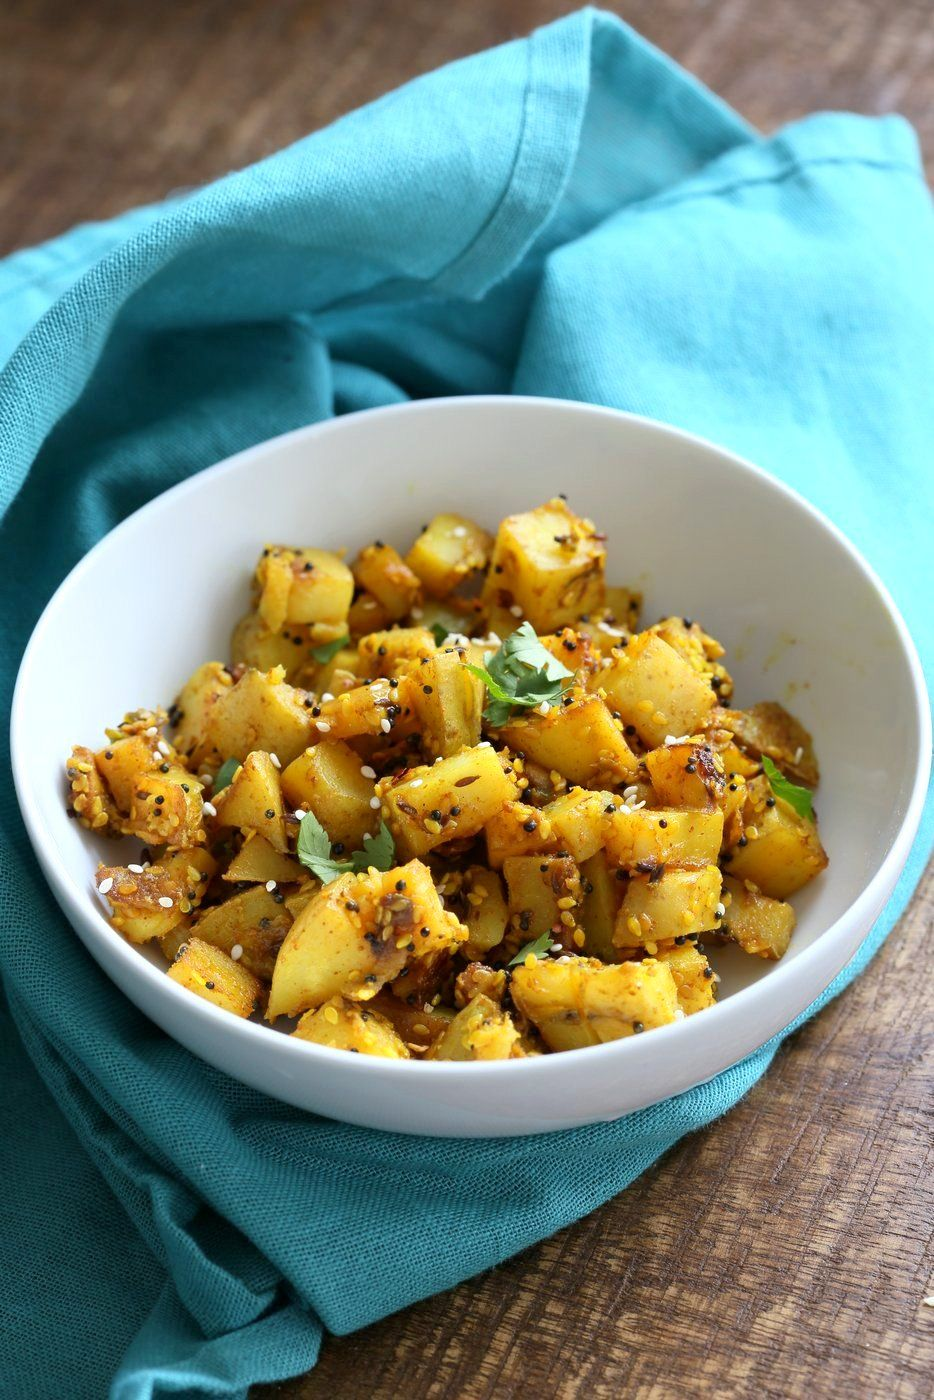 Gujarati potatoes with sesame seeds bateta nu shaak recipe food forumfinder Gallery